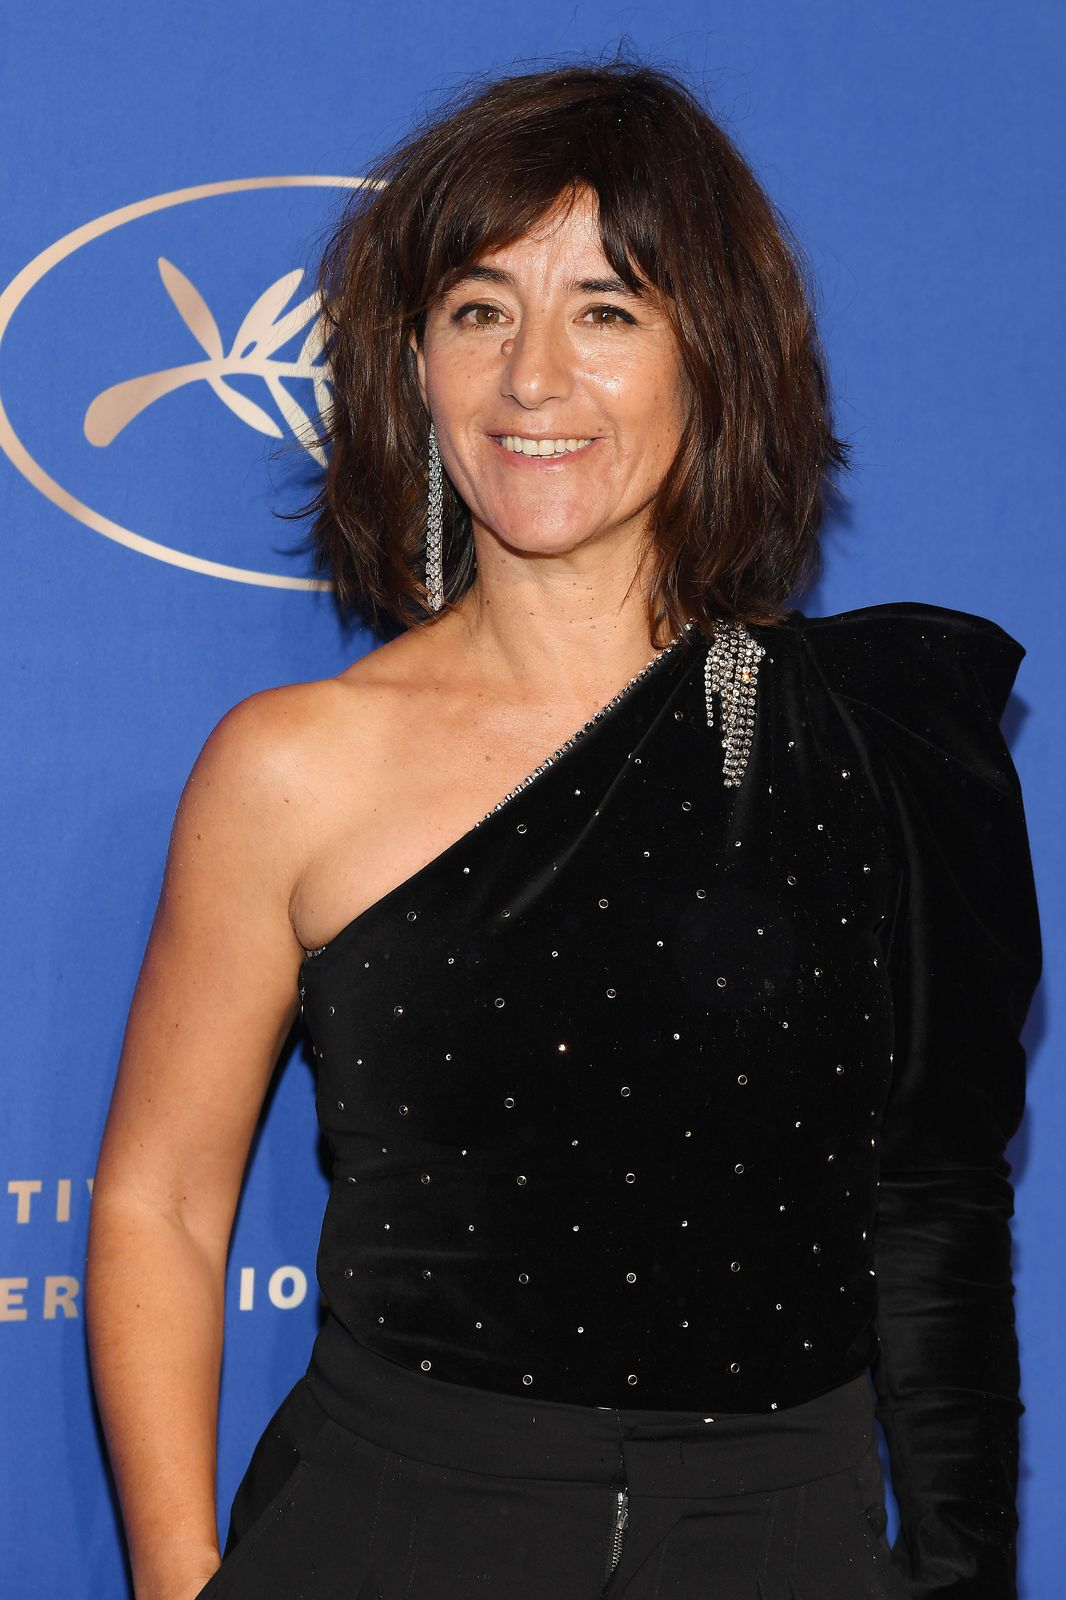 L'actrice Romane Bohringer   Photo : Getty Images